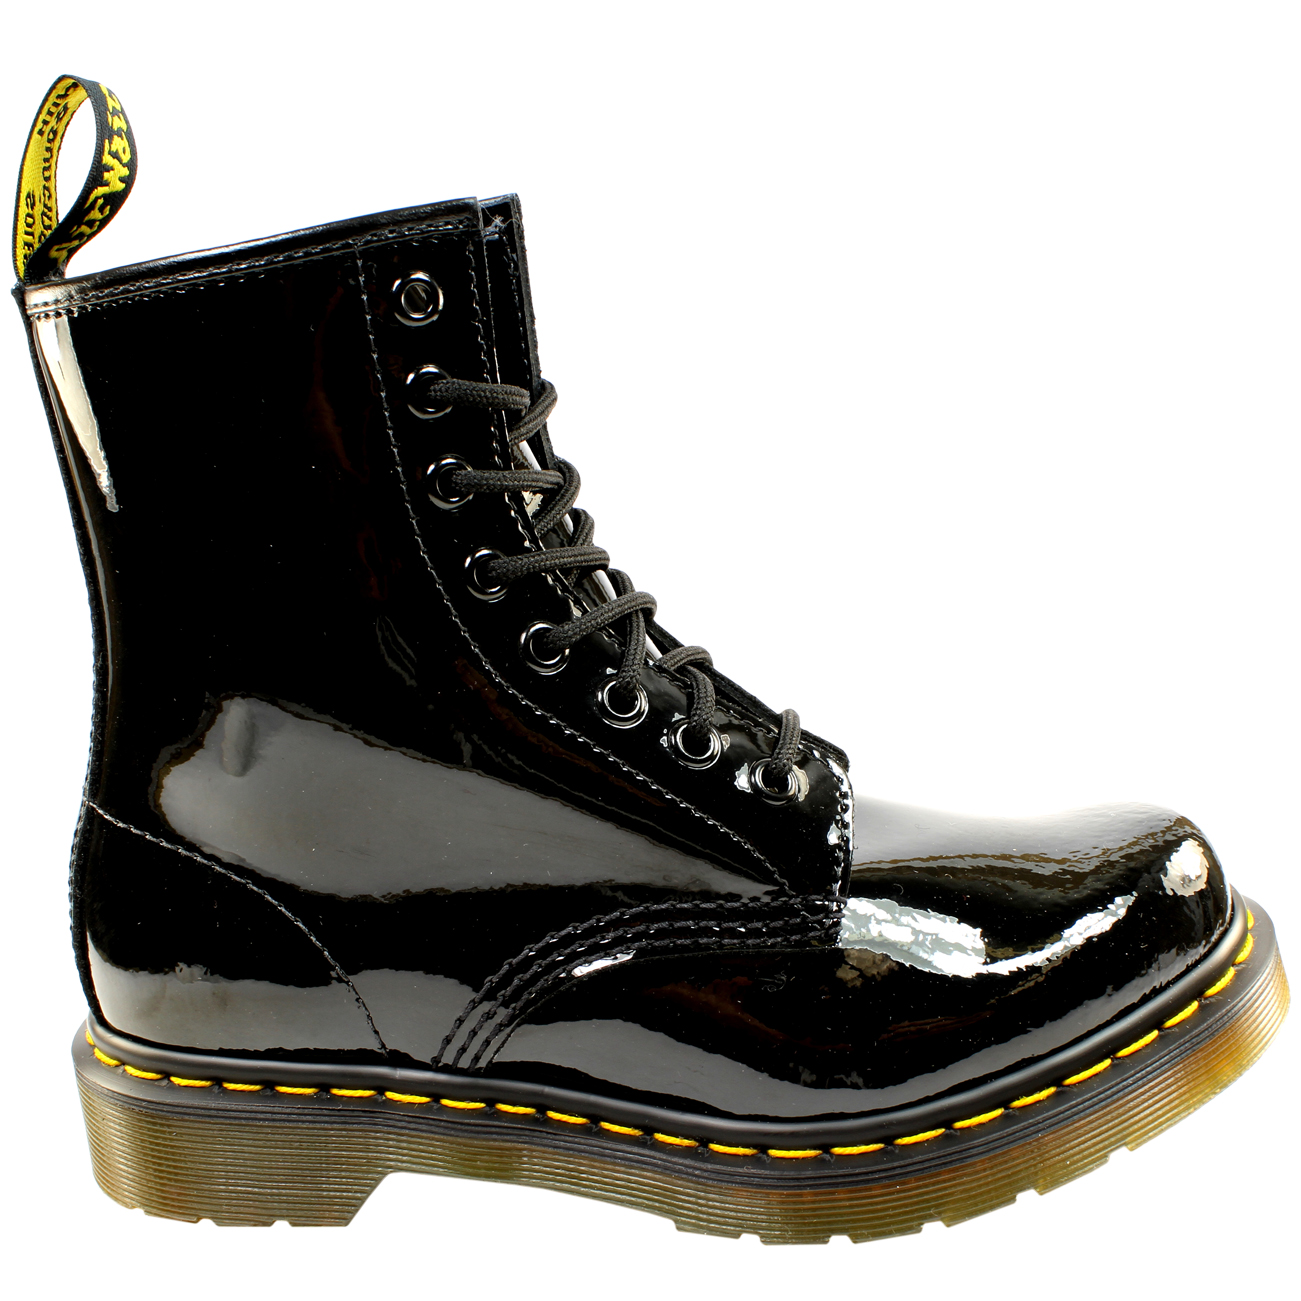 546aad5c4 Details about Ladies Dr Martens 1460 W 8 Eyelet Patent Lamper Military Lace  Up Boot All Sizes